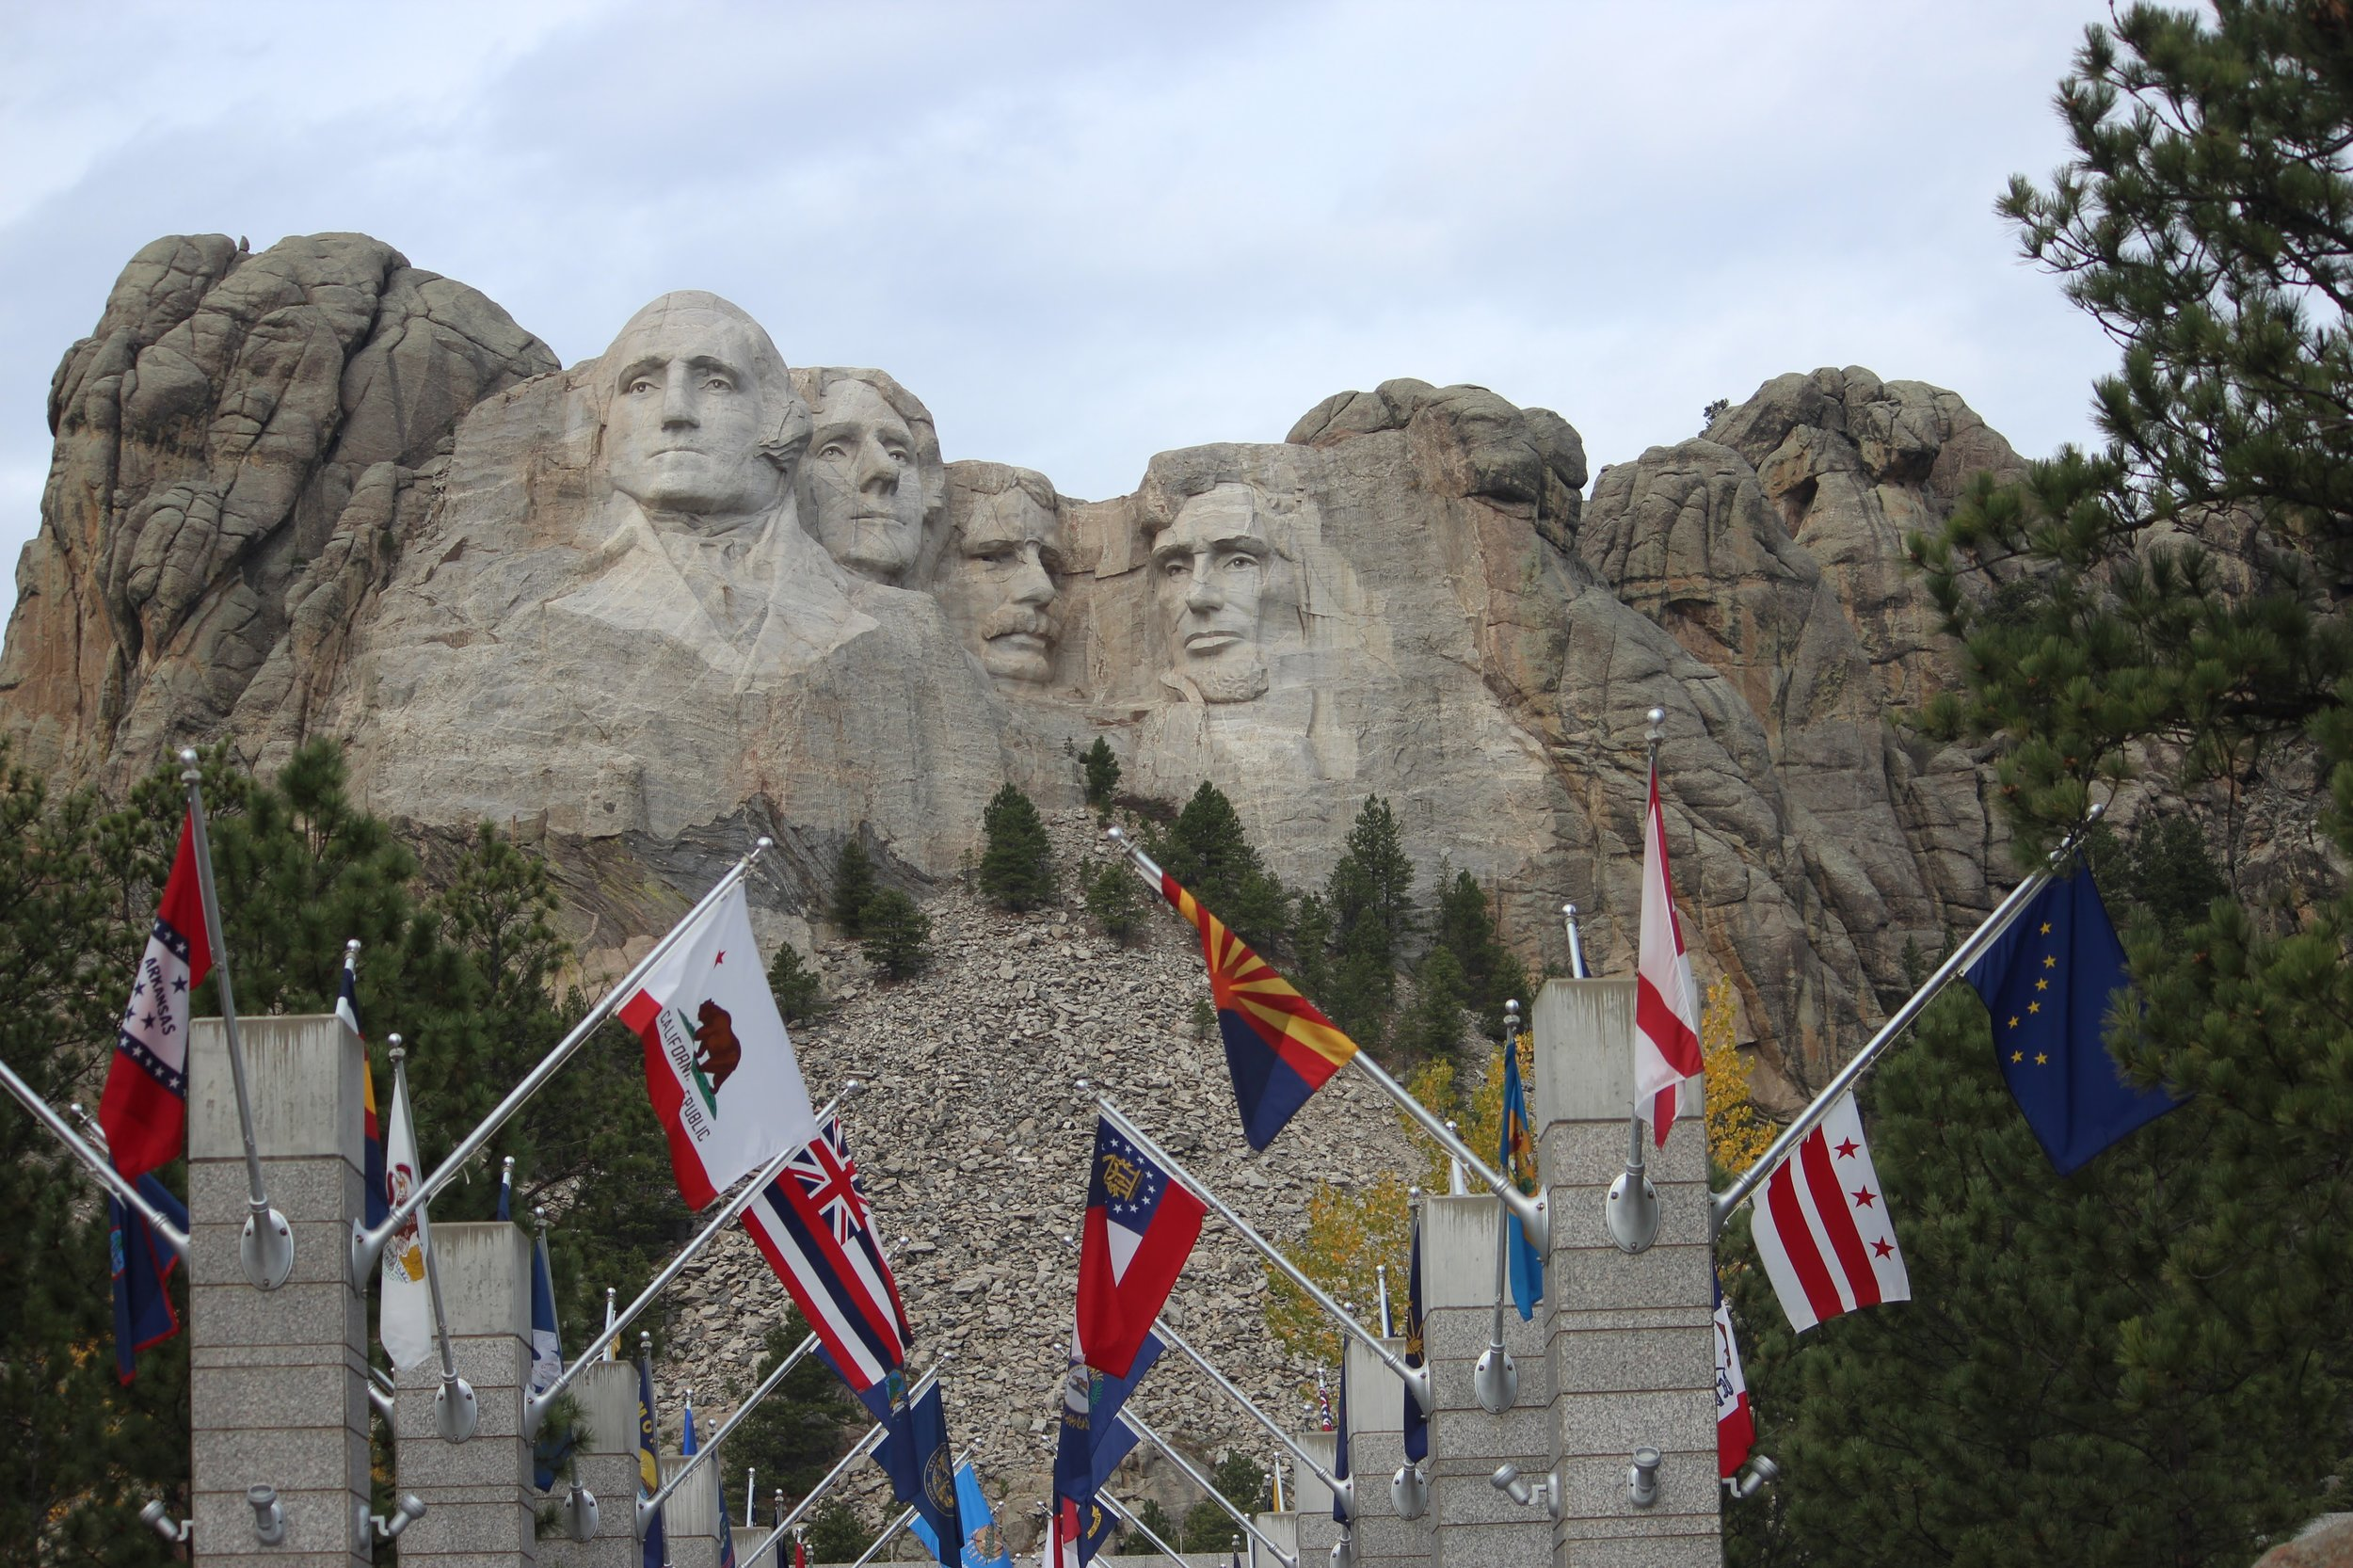 Mount Rushmore - Looking for inspiration in weeks prior to the 2016 Presidential election